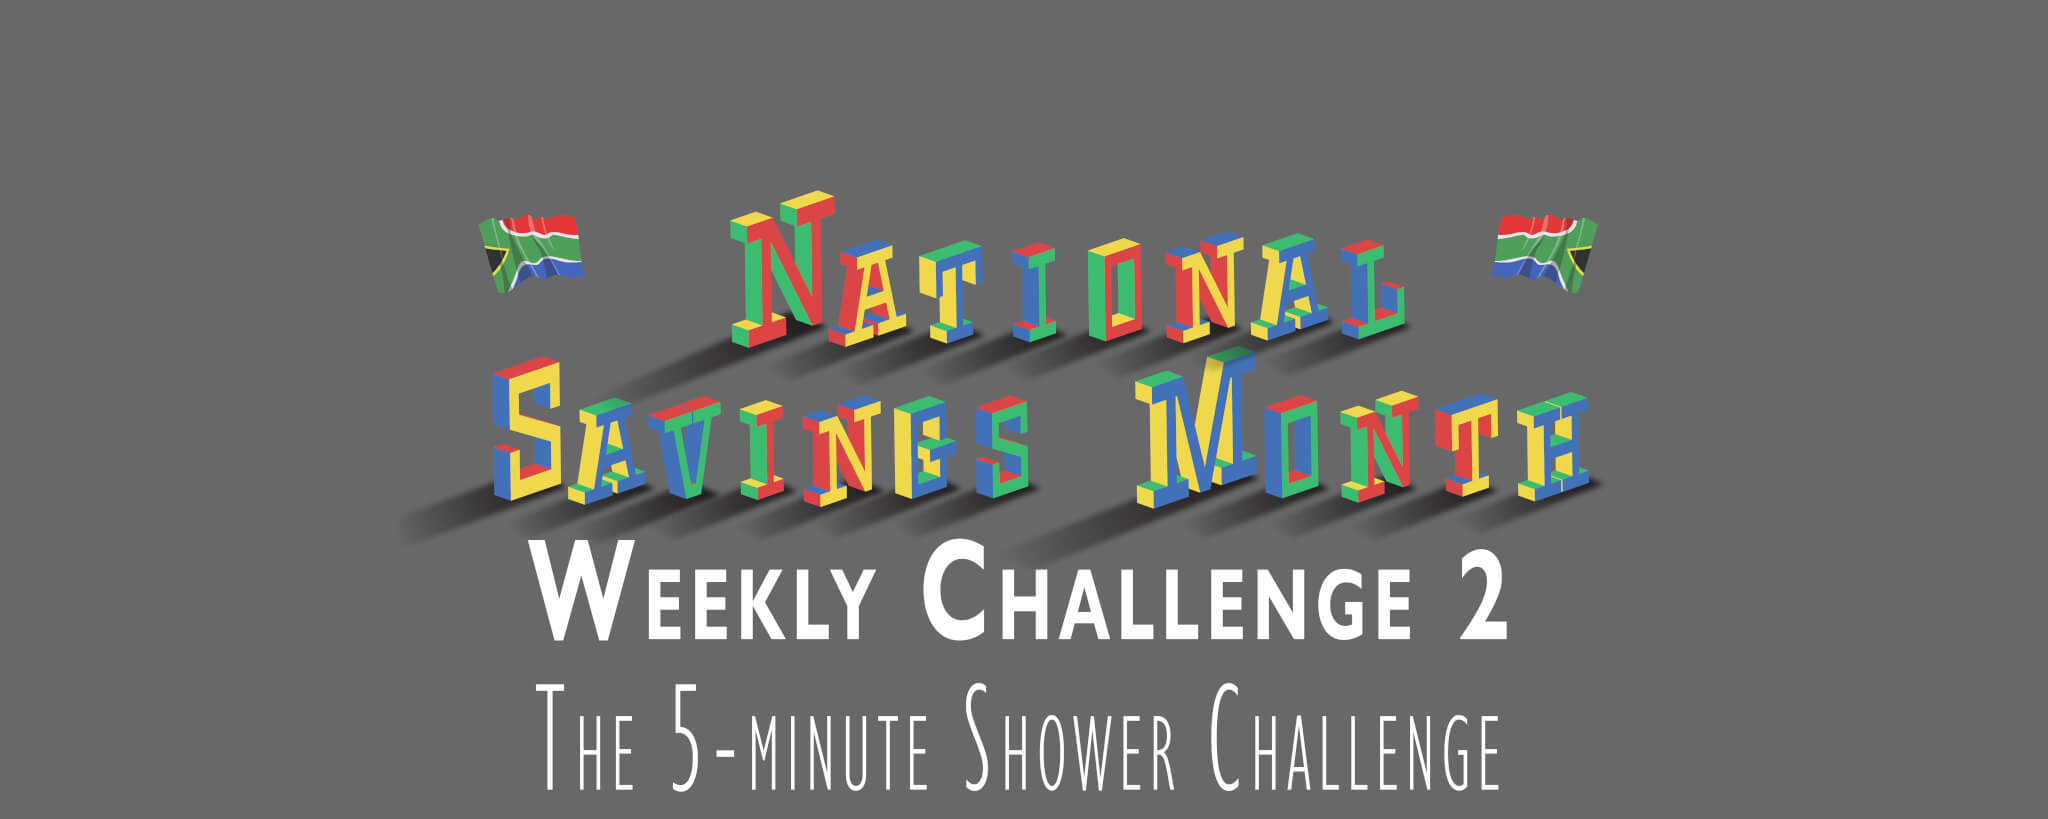 National Savings Month Weekly Challenge 2 - The 5-minute shower